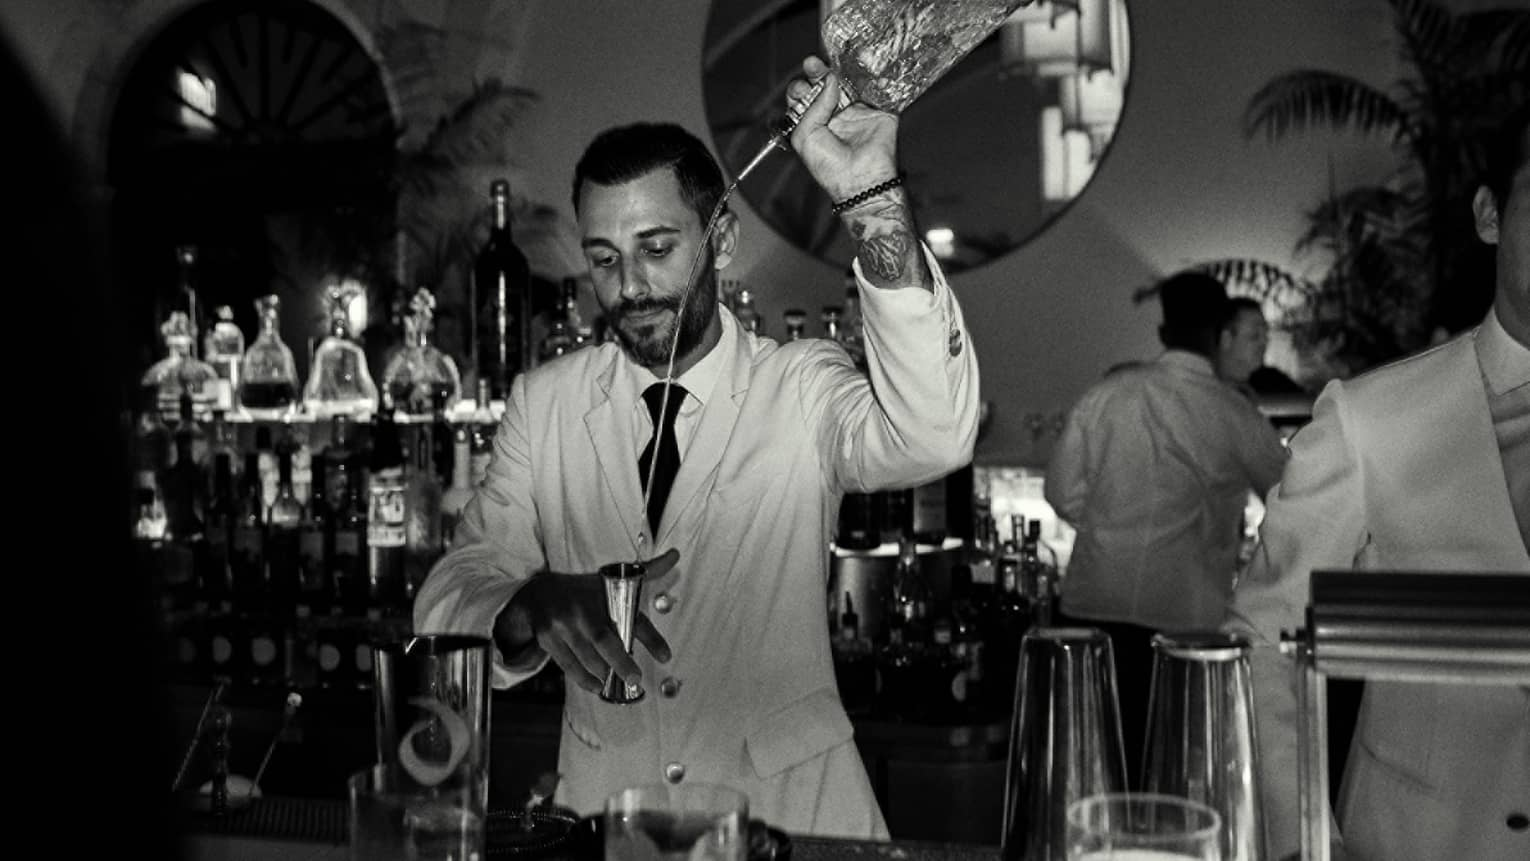 Black & white shot of a bartender pouring liquor into a shot glass